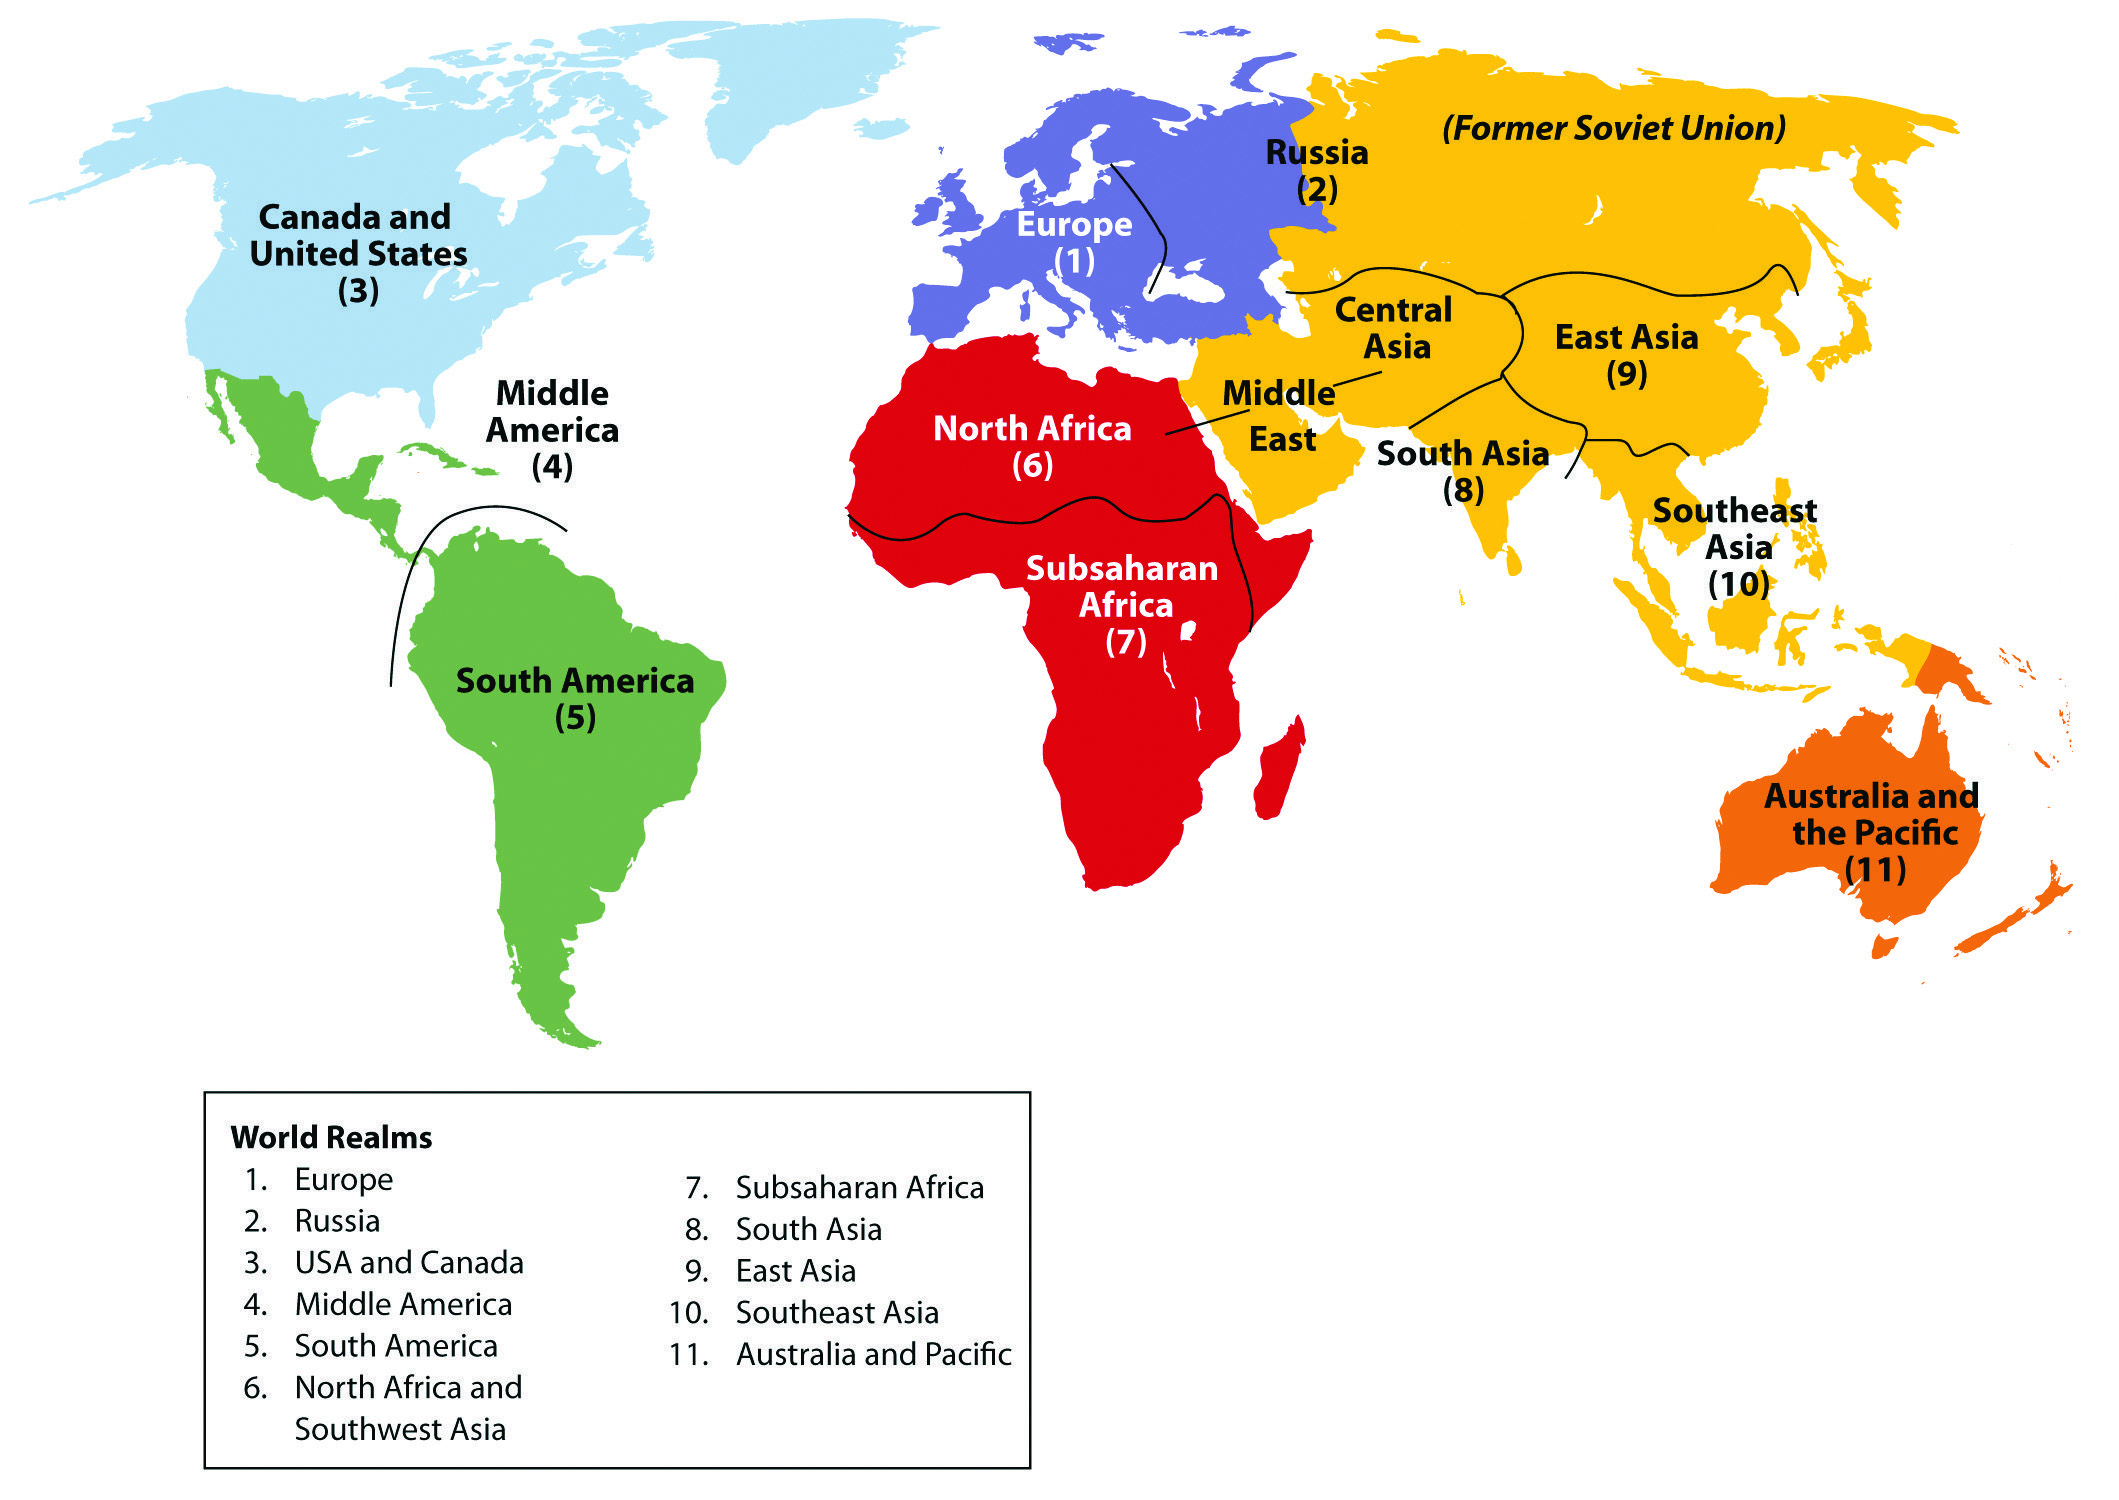 Geography for kids asian countries and the continent of asia 4621468 asia facts for kids geography attractions peoplecontinent facts the 7 continents geography for kidsworld maps geography online games sheppard software gumiabroncs Images